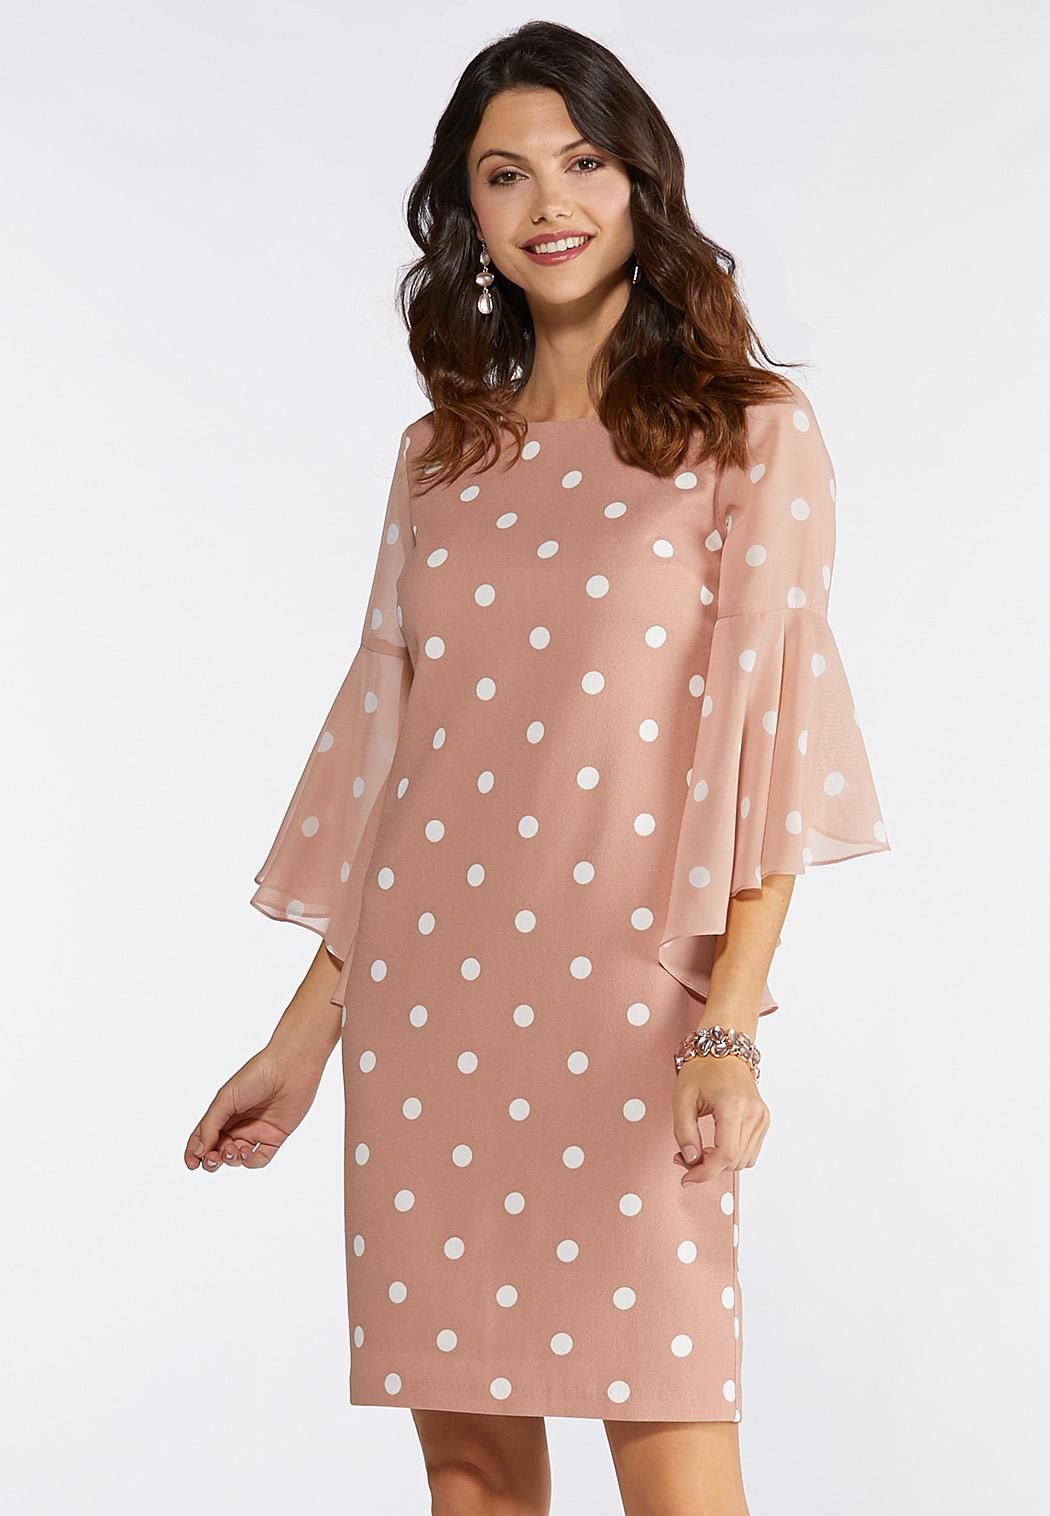 bf7a8c53f0348 Plus Size Dresses For Women - Swing